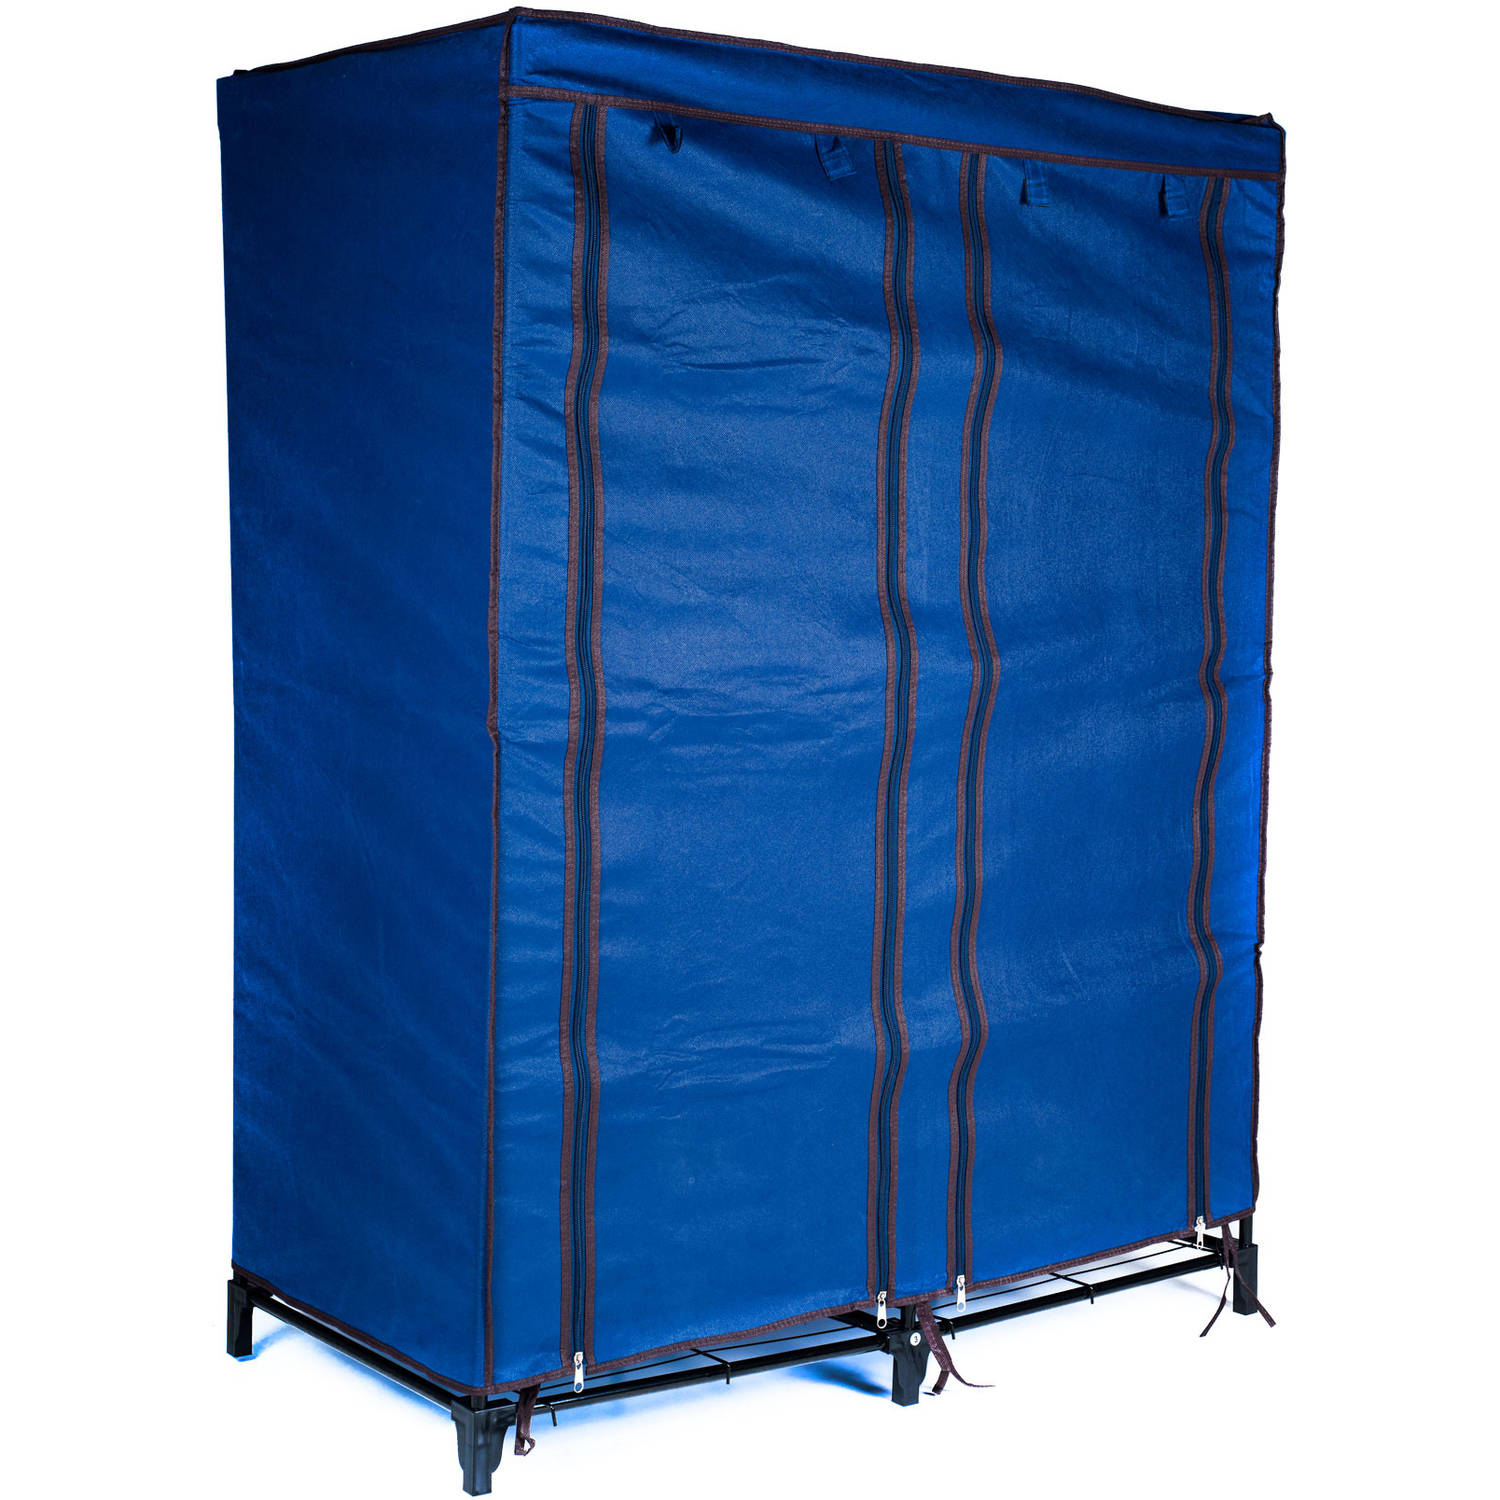 Everyday Home Clothes Closet Portable Wardrobe with Shelves, Blue